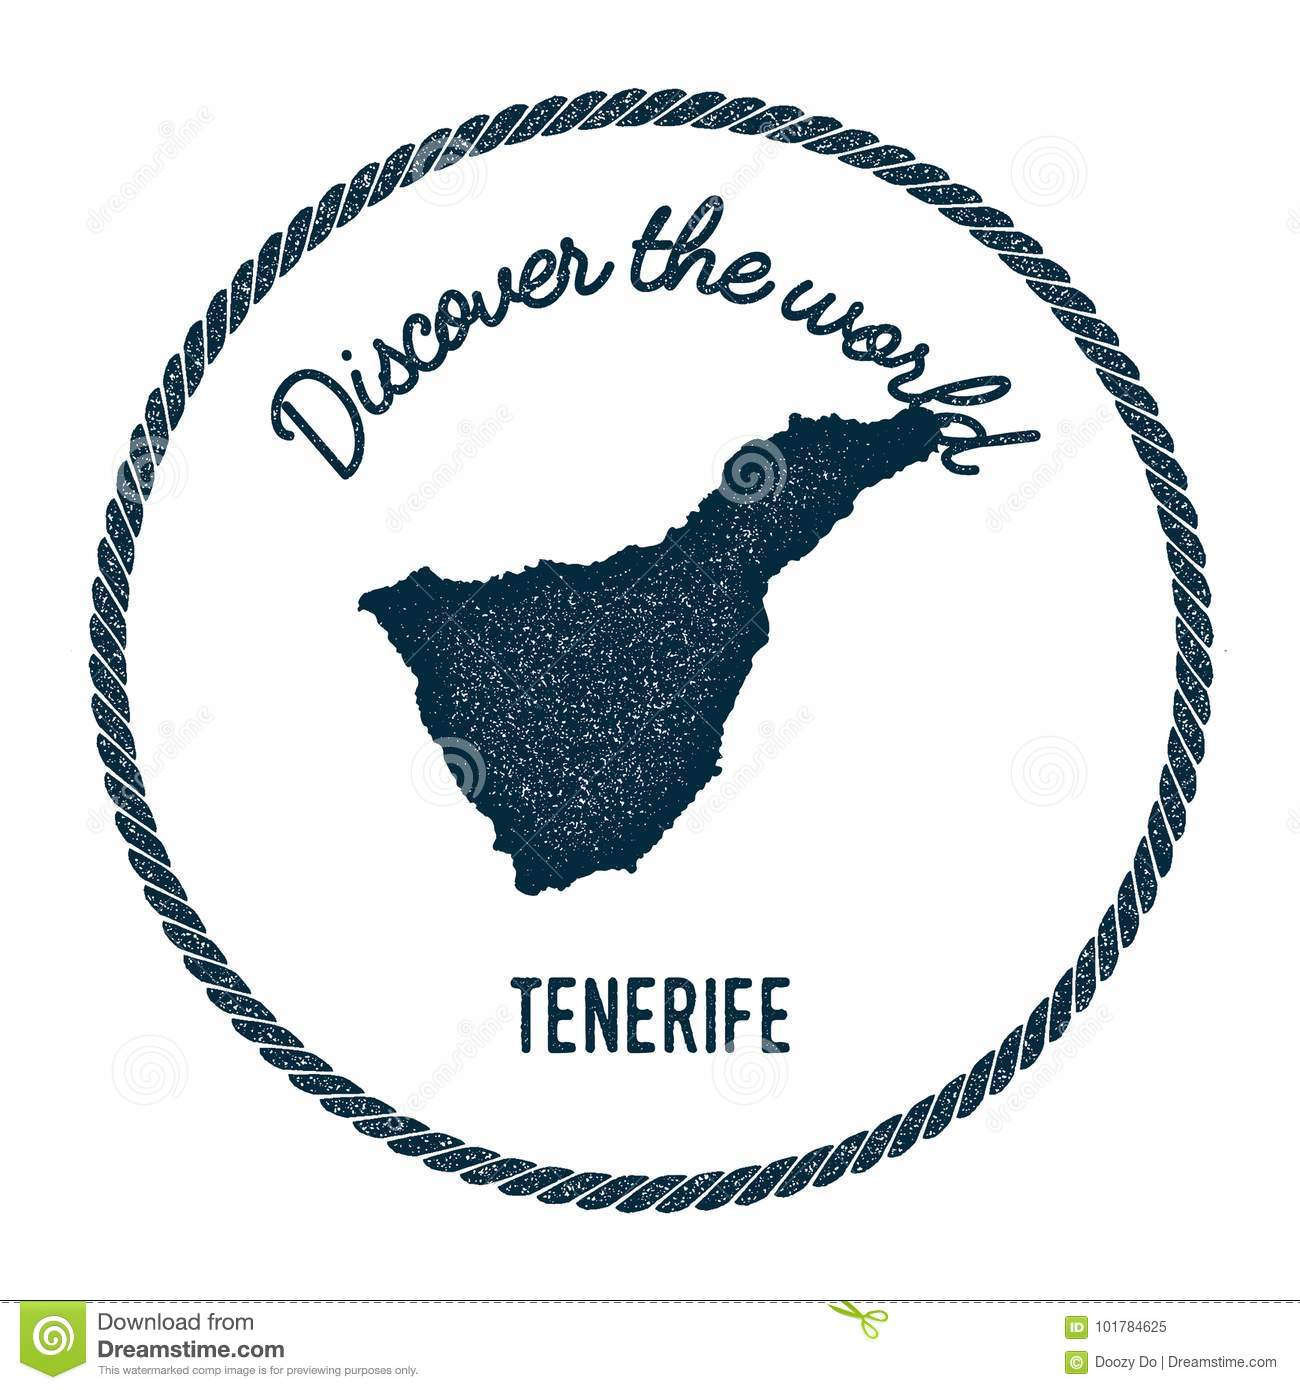 Tenerife Map In Vintage Discover The World. Stock Vector ...